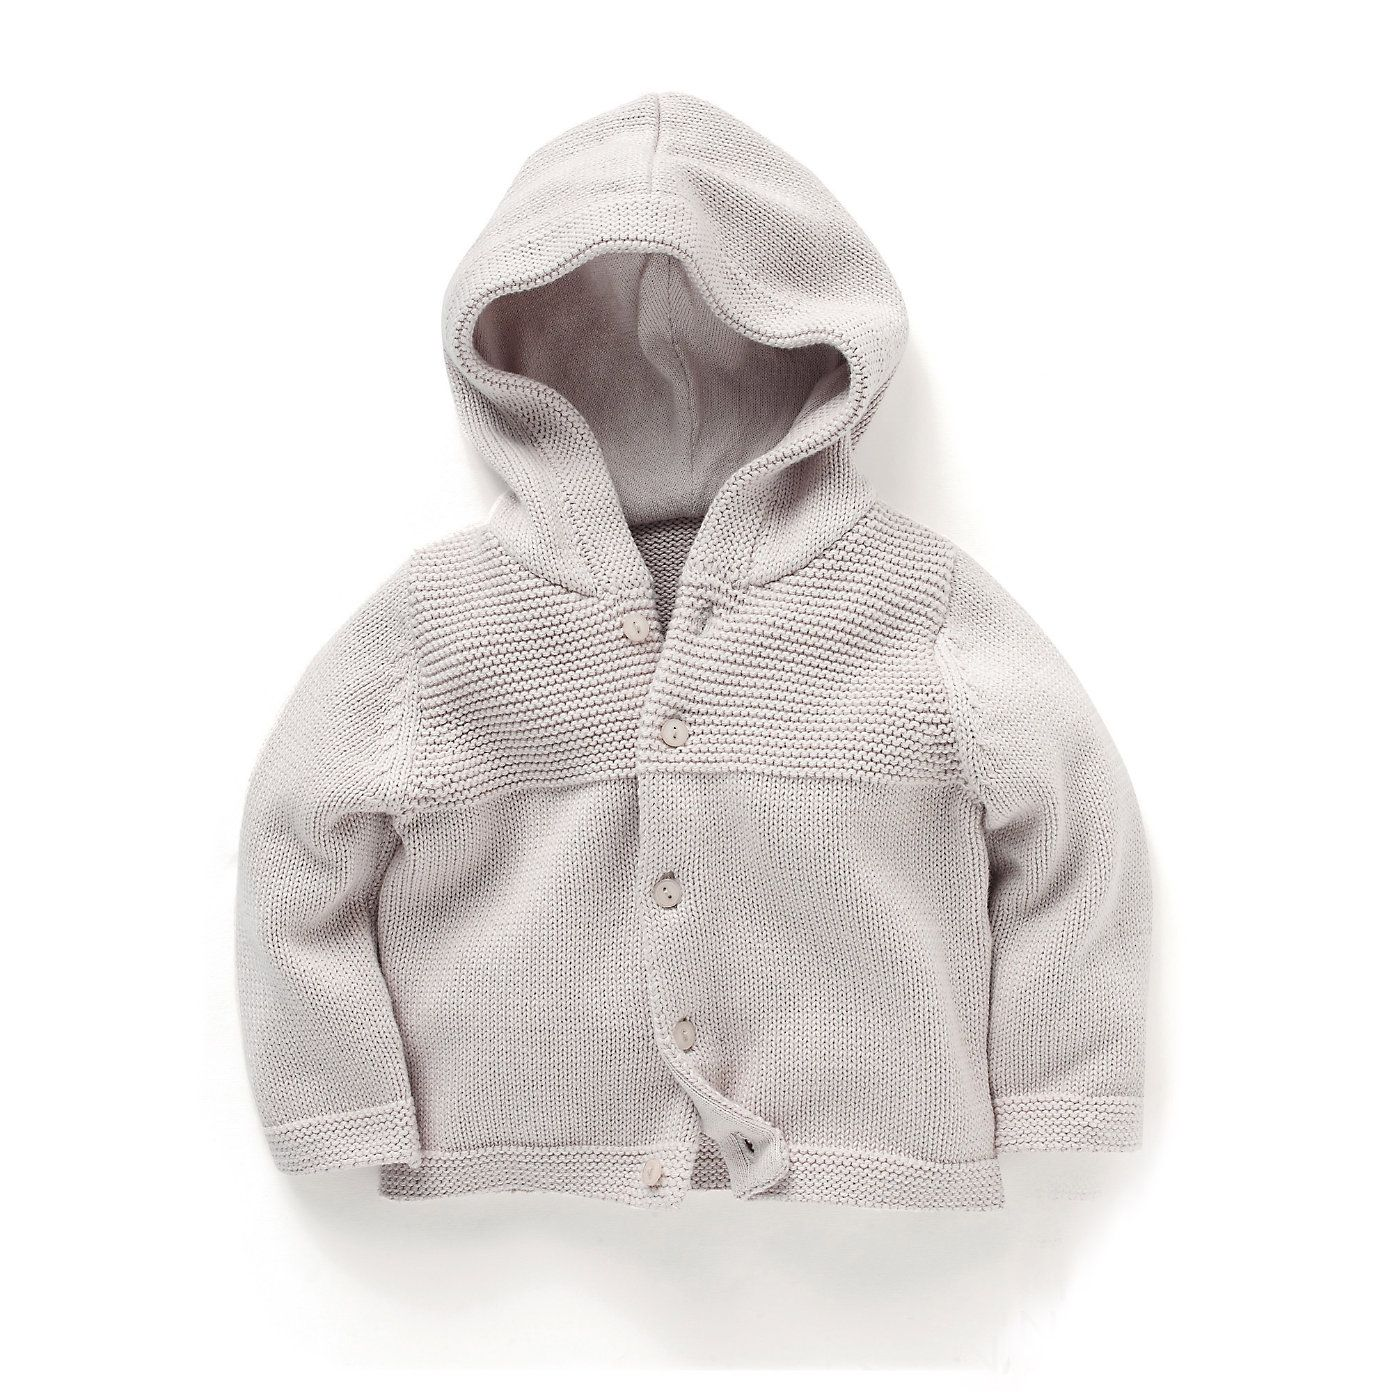 Textured Hooded Cardigan | The White Company | BCD | Pinterest ...